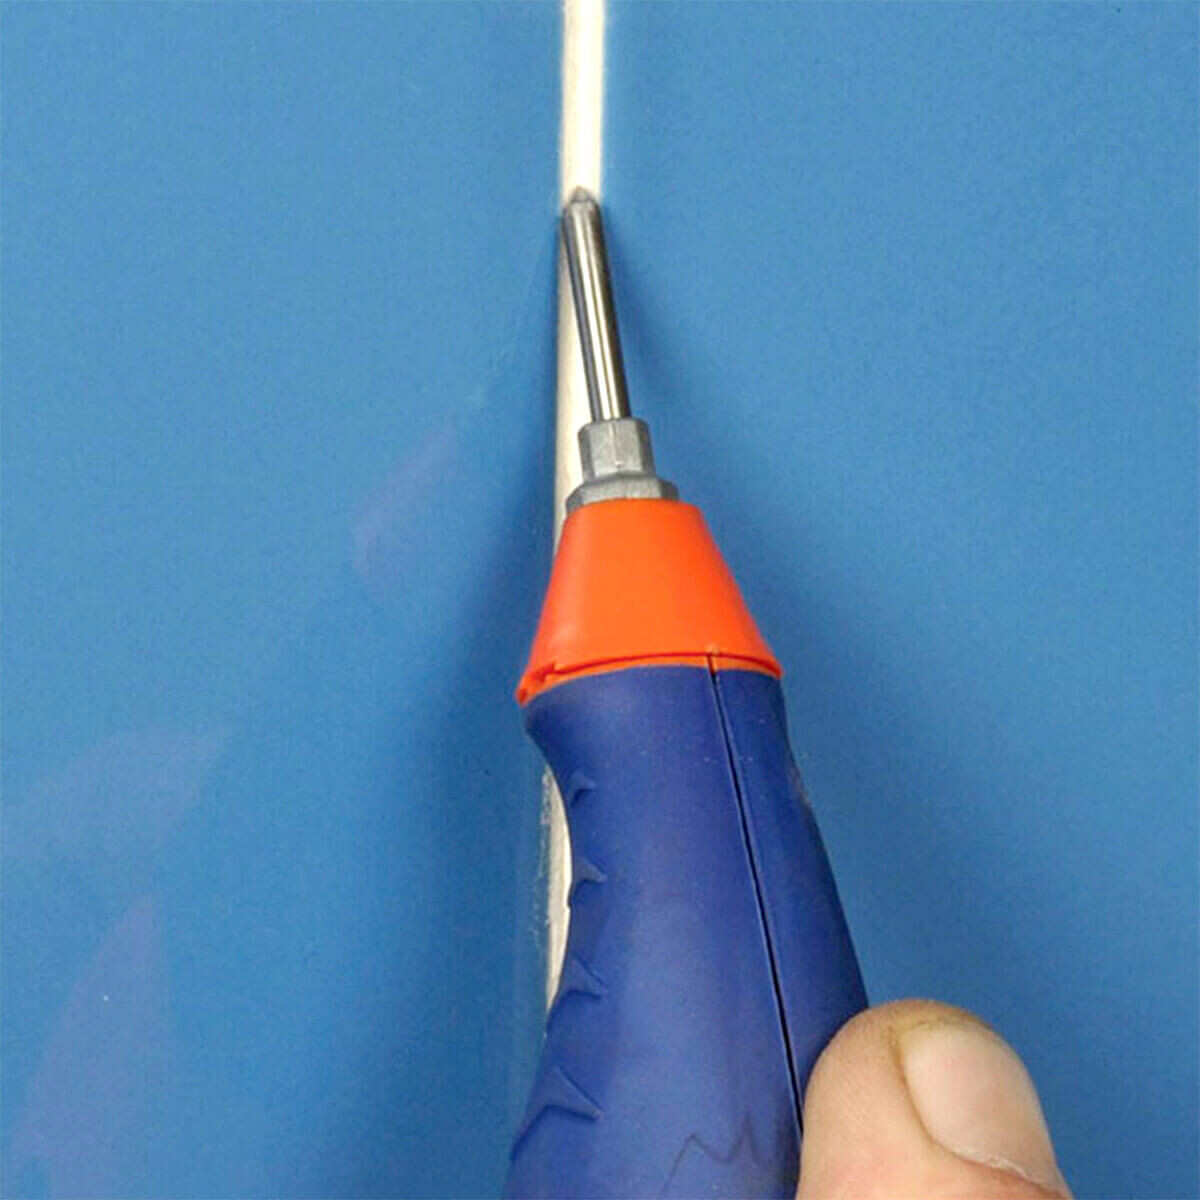 Vitrex grout tool removes tile